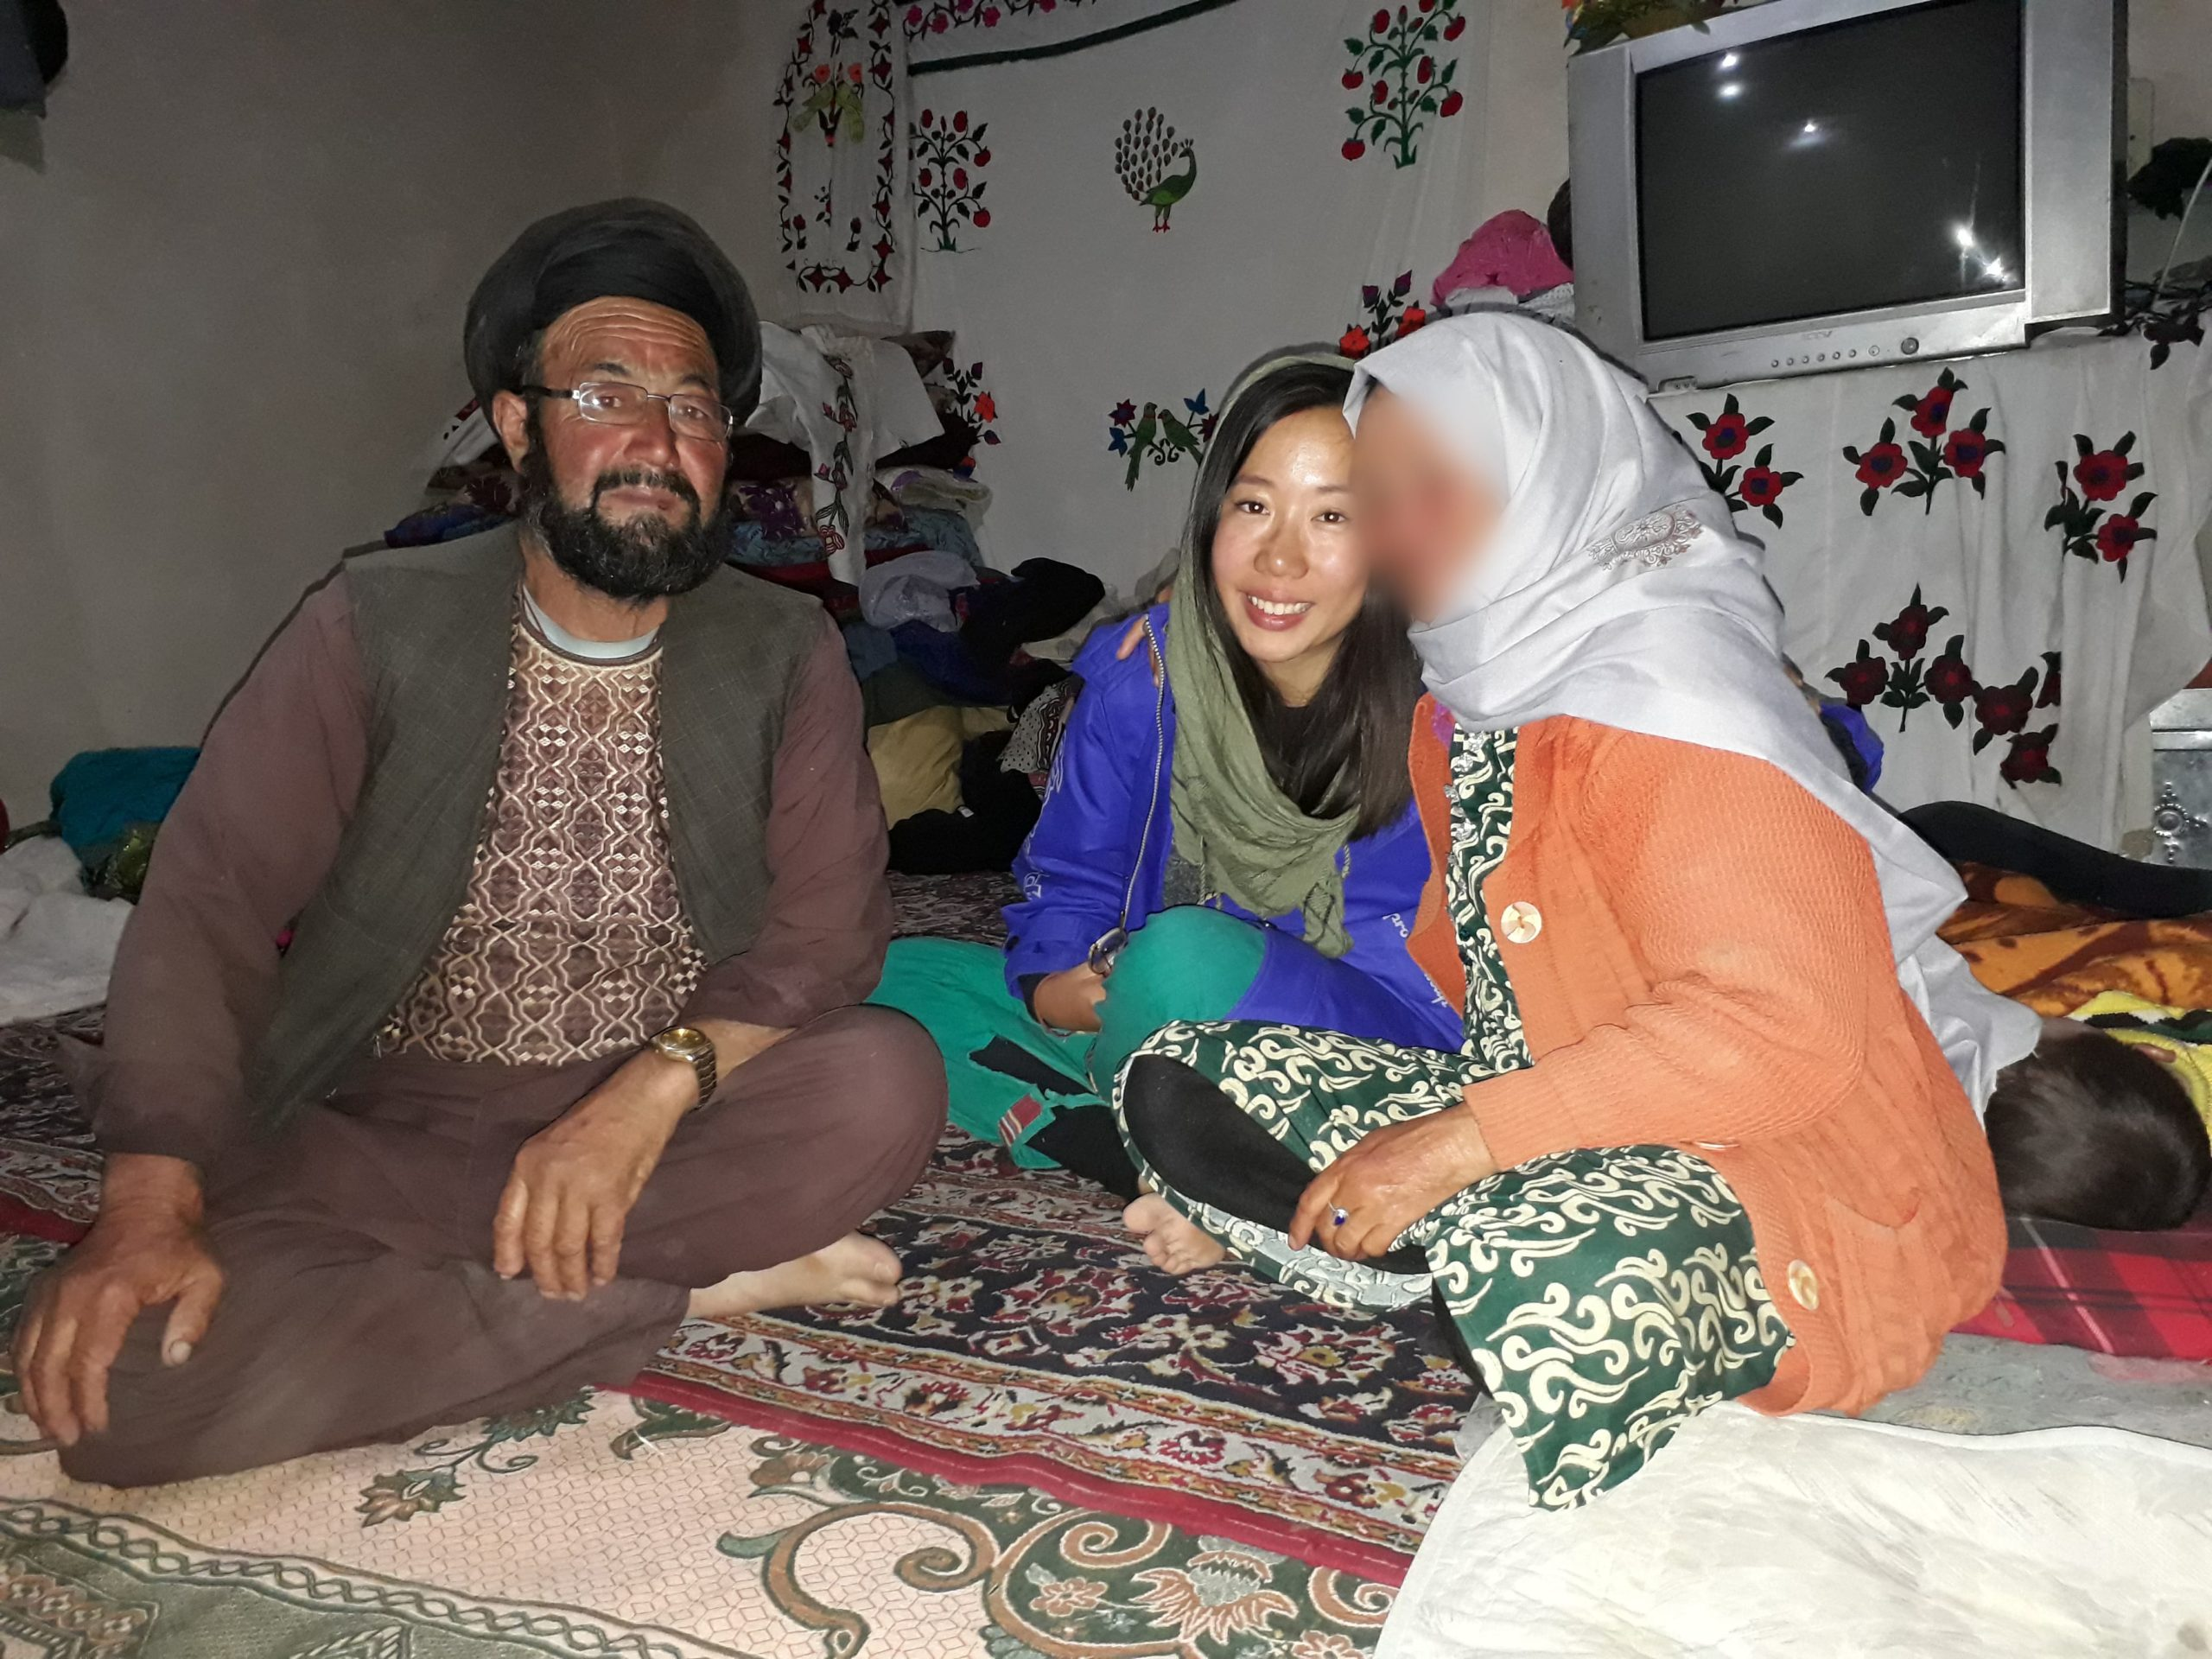 Marsha sits between her Afghani hosts. The woman's face is blurred out to respect her privacy.